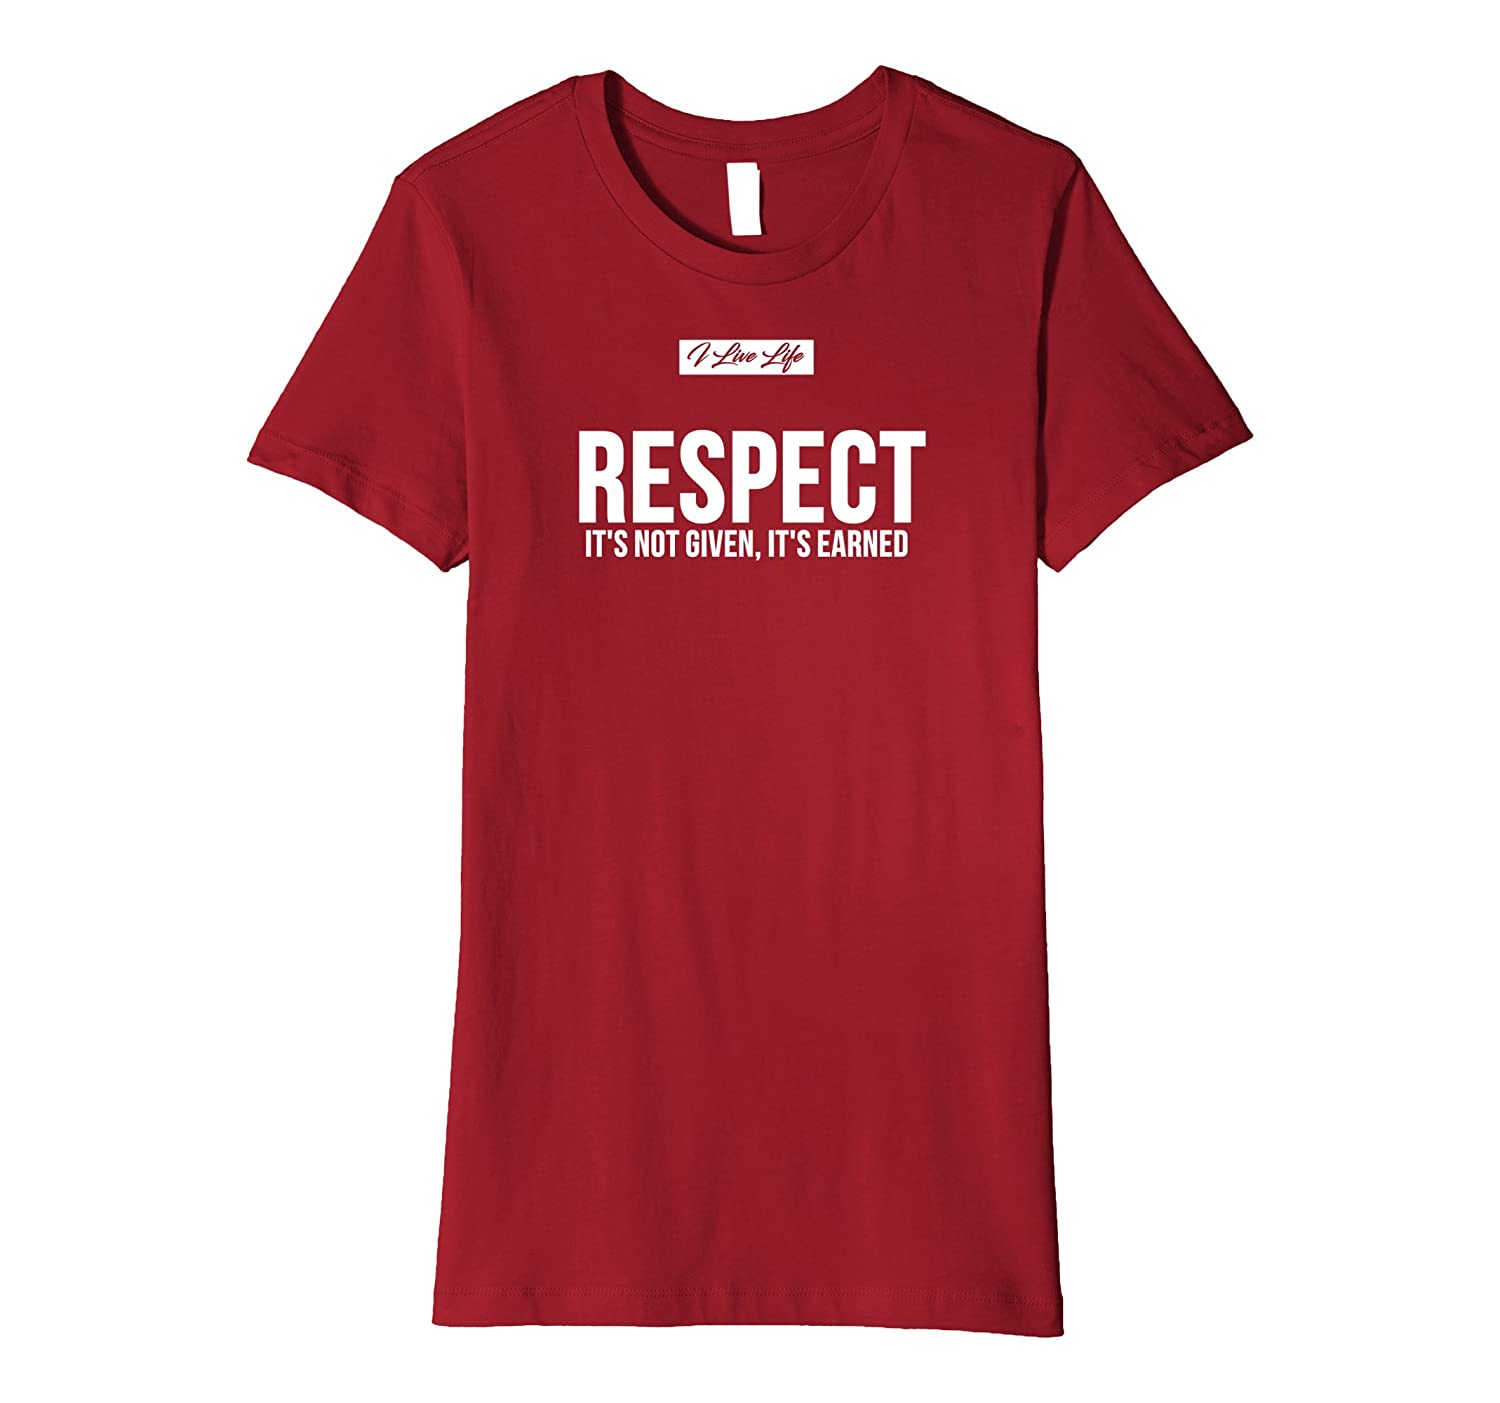 Premium Trendy RESPECT IT'S NOT GIVEN, ITS EARNED T-shirt